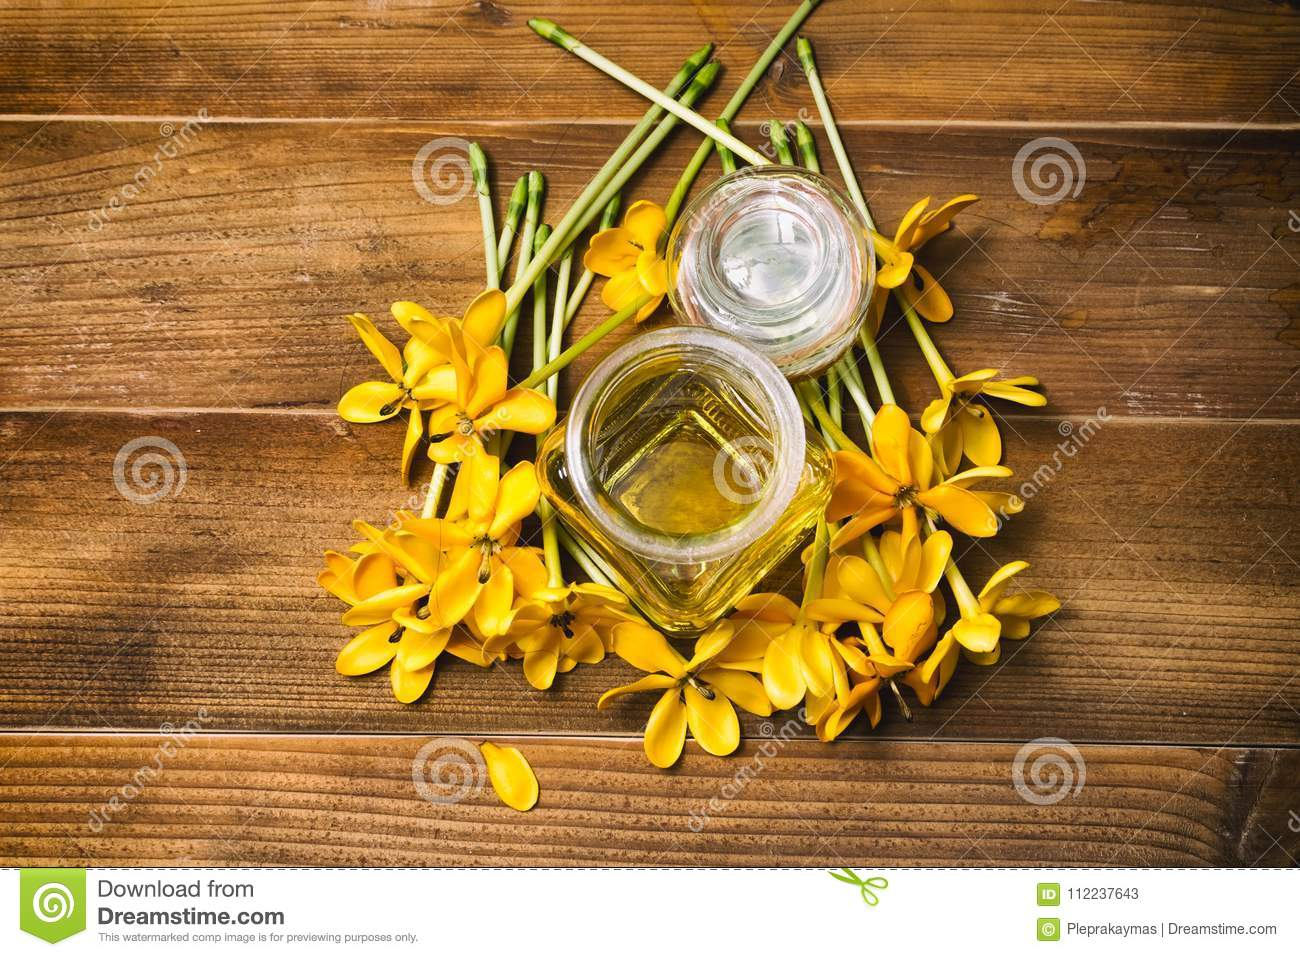 Essential oil with yellow gardenia flowers for aroma massage stock download essential oil with yellow gardenia flowers for aroma massage stock image image of aroma mightylinksfo